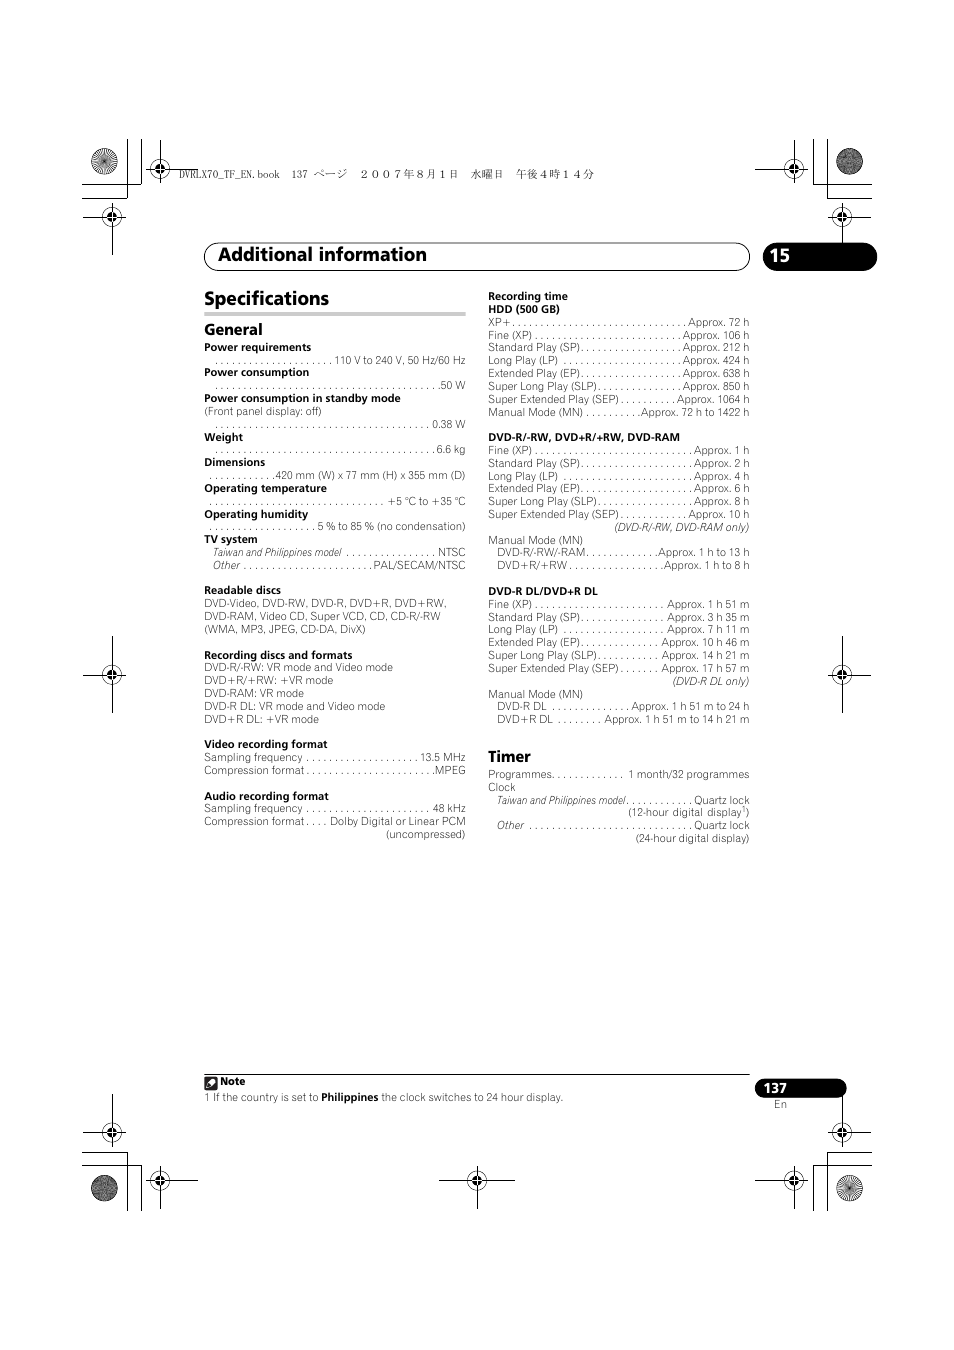 Specifications, Additional information, 15 specifications